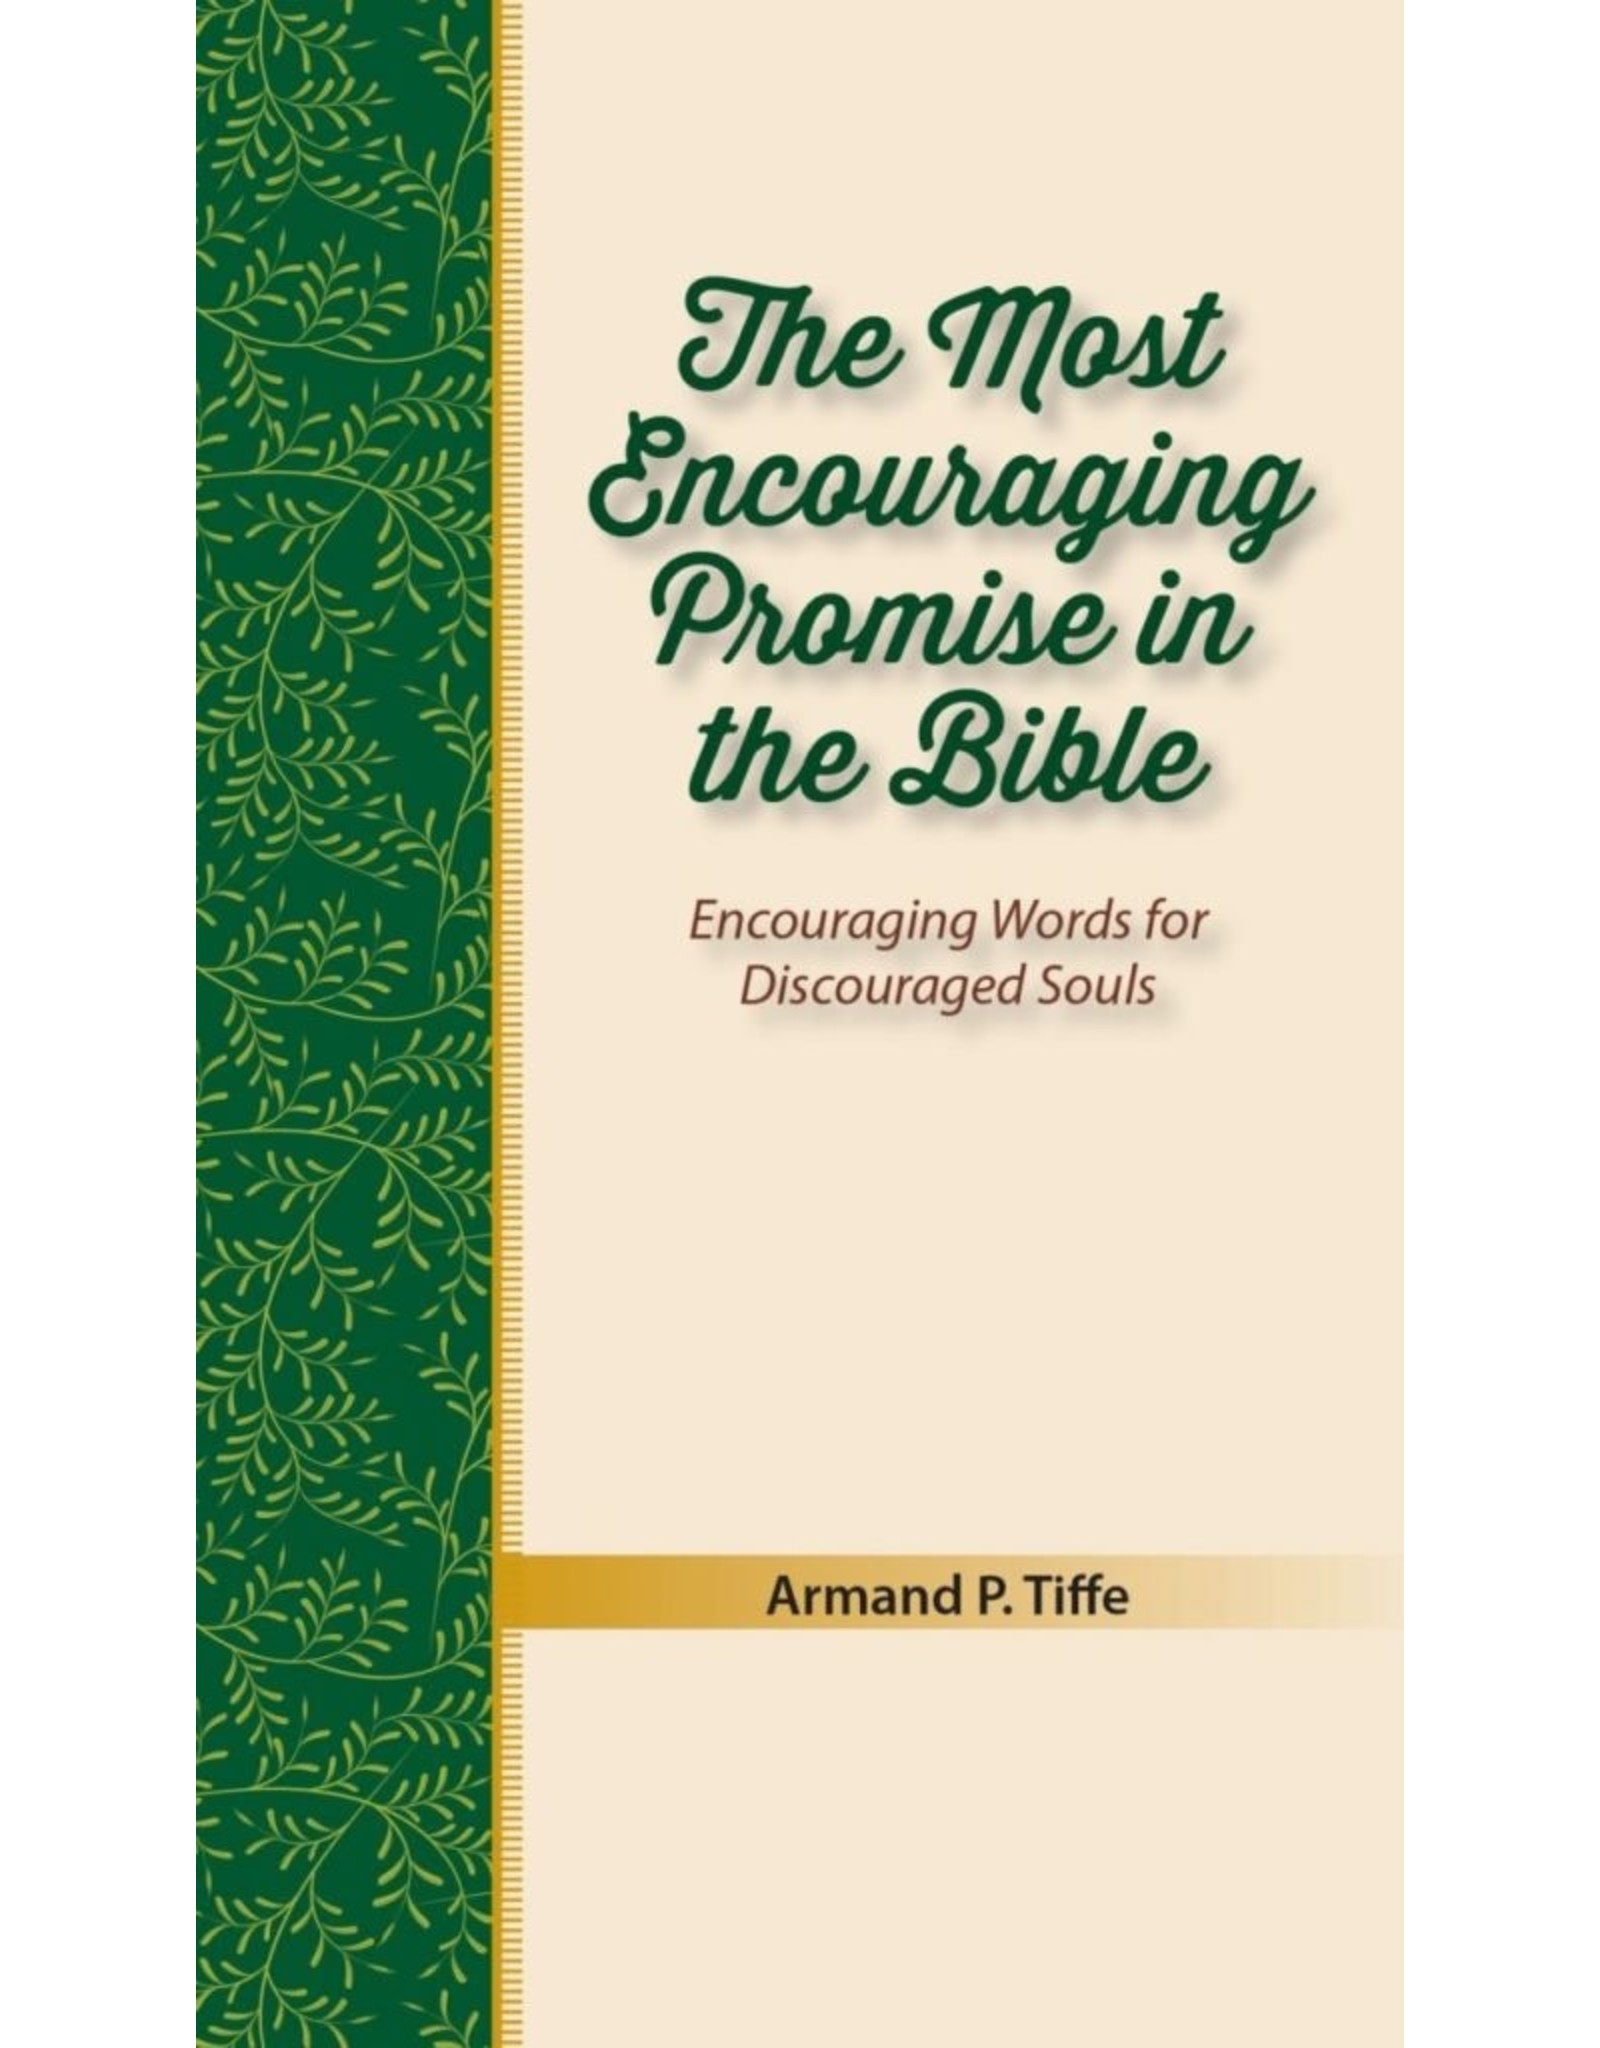 Focus Publishing The Most Encouraging Promise in the Bible: Encouraging Words for Discouraged Souls